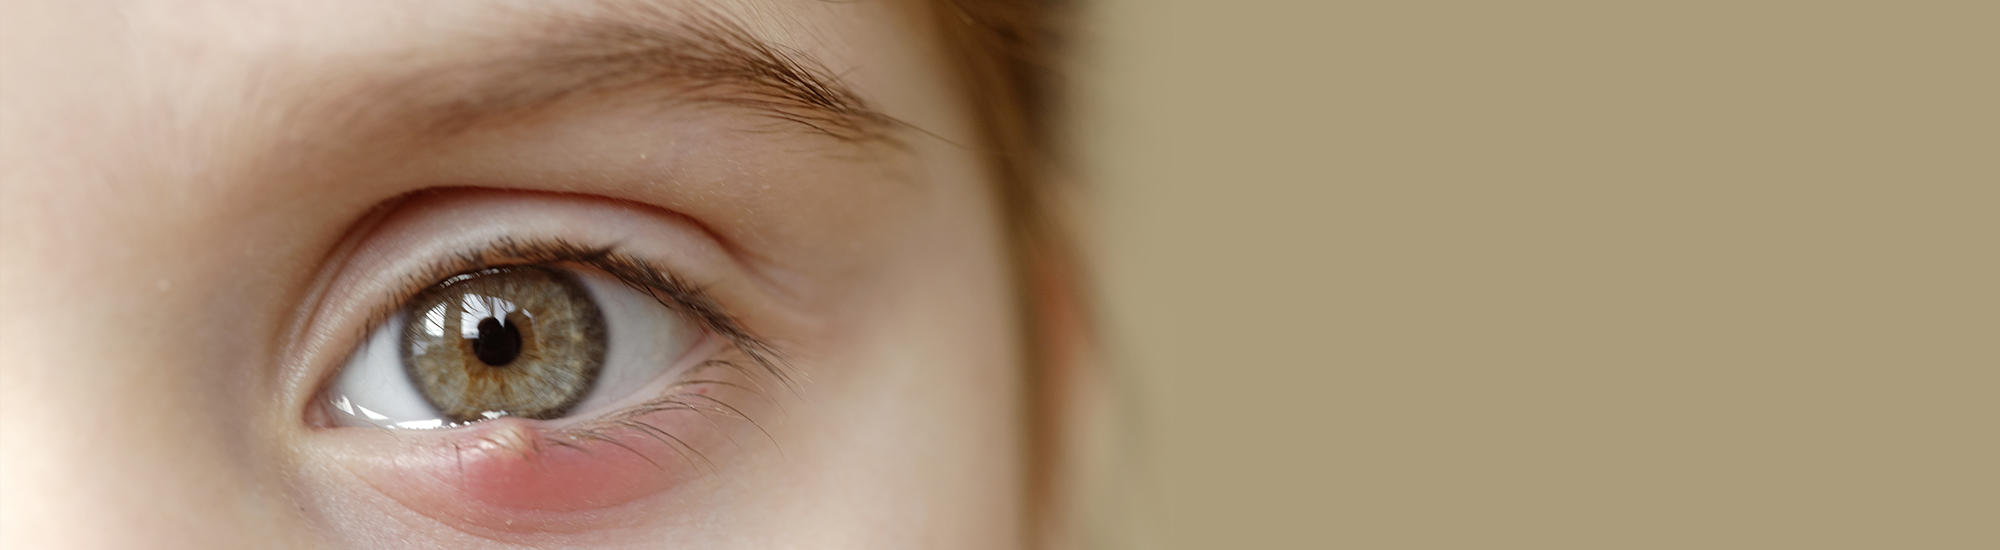 Ayurvedic treatment for What is Sty - Eyelid cyst